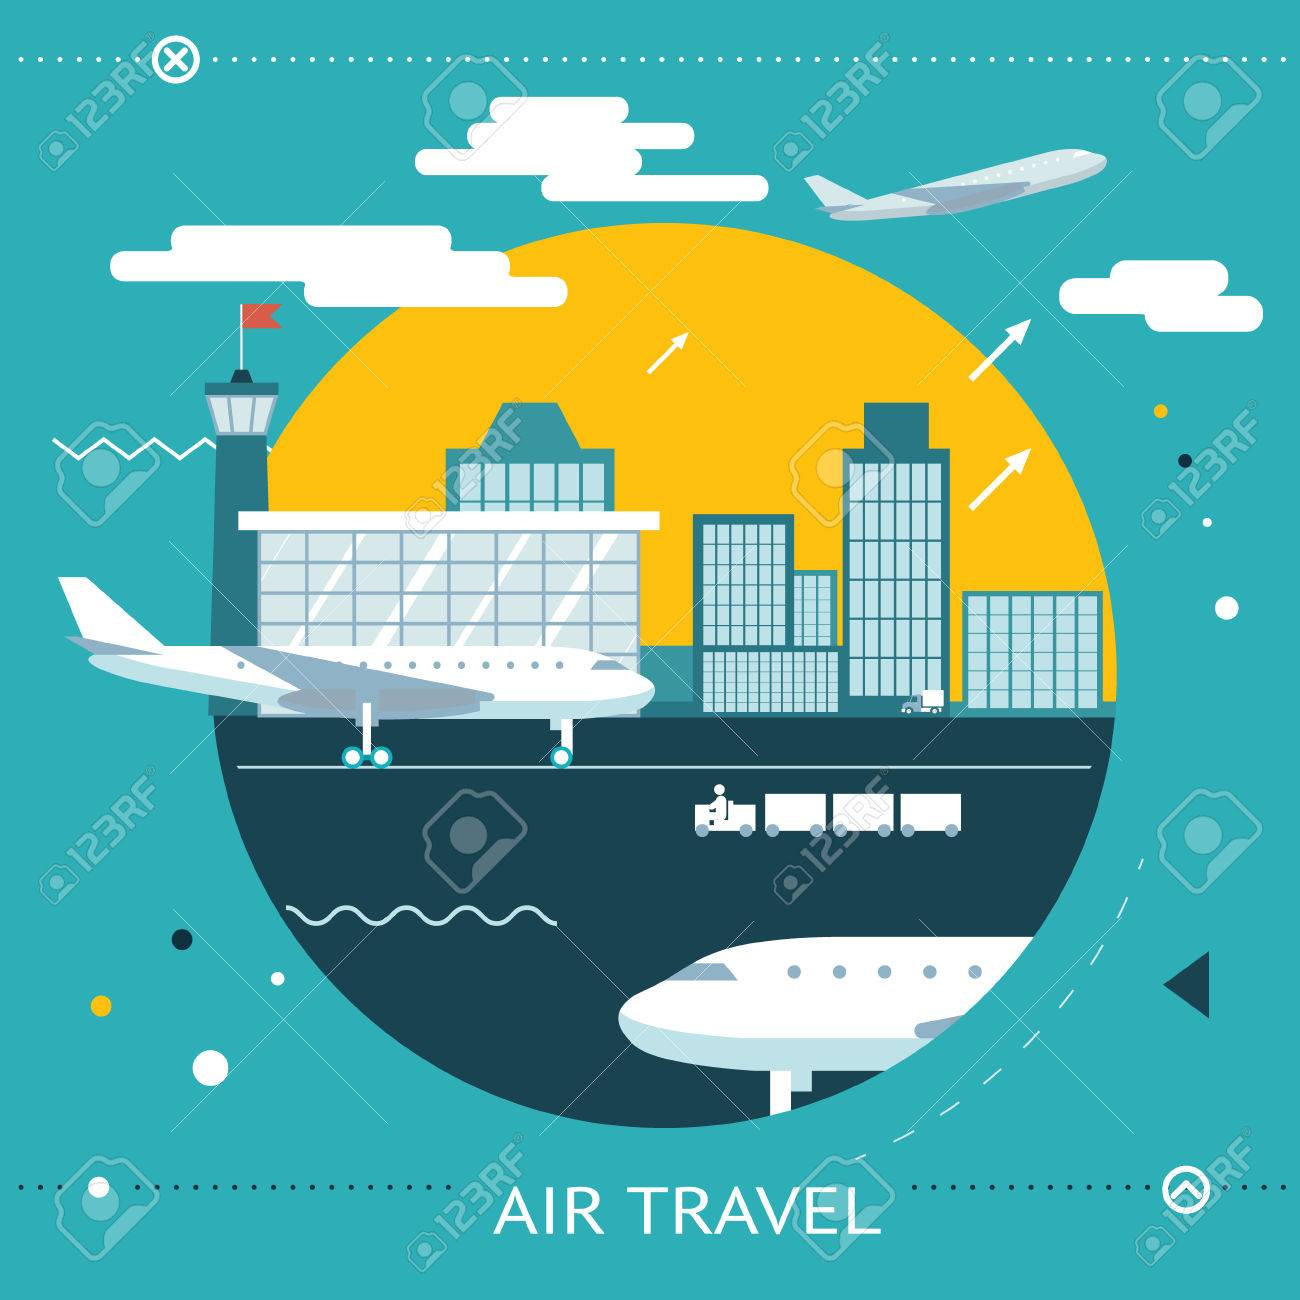 Travel Lifestyle Concept of Planning a Summer Vacation Tourism and Journey Symbol Airplane Airport City  Flat Design Icon Template Stock Vector - 29035342